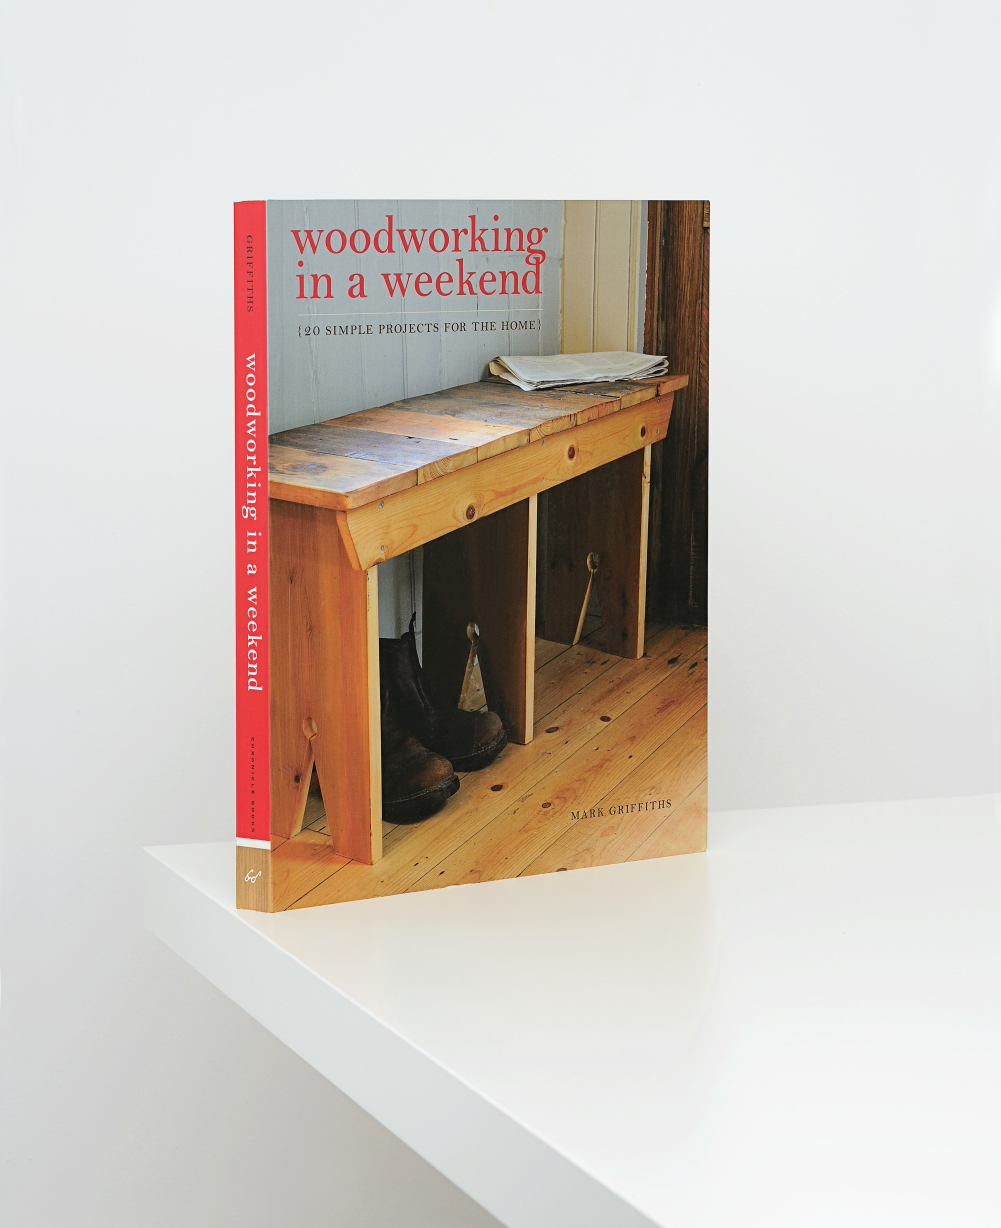 Woodwork in a Weekend. Commissioned by Ivy Press